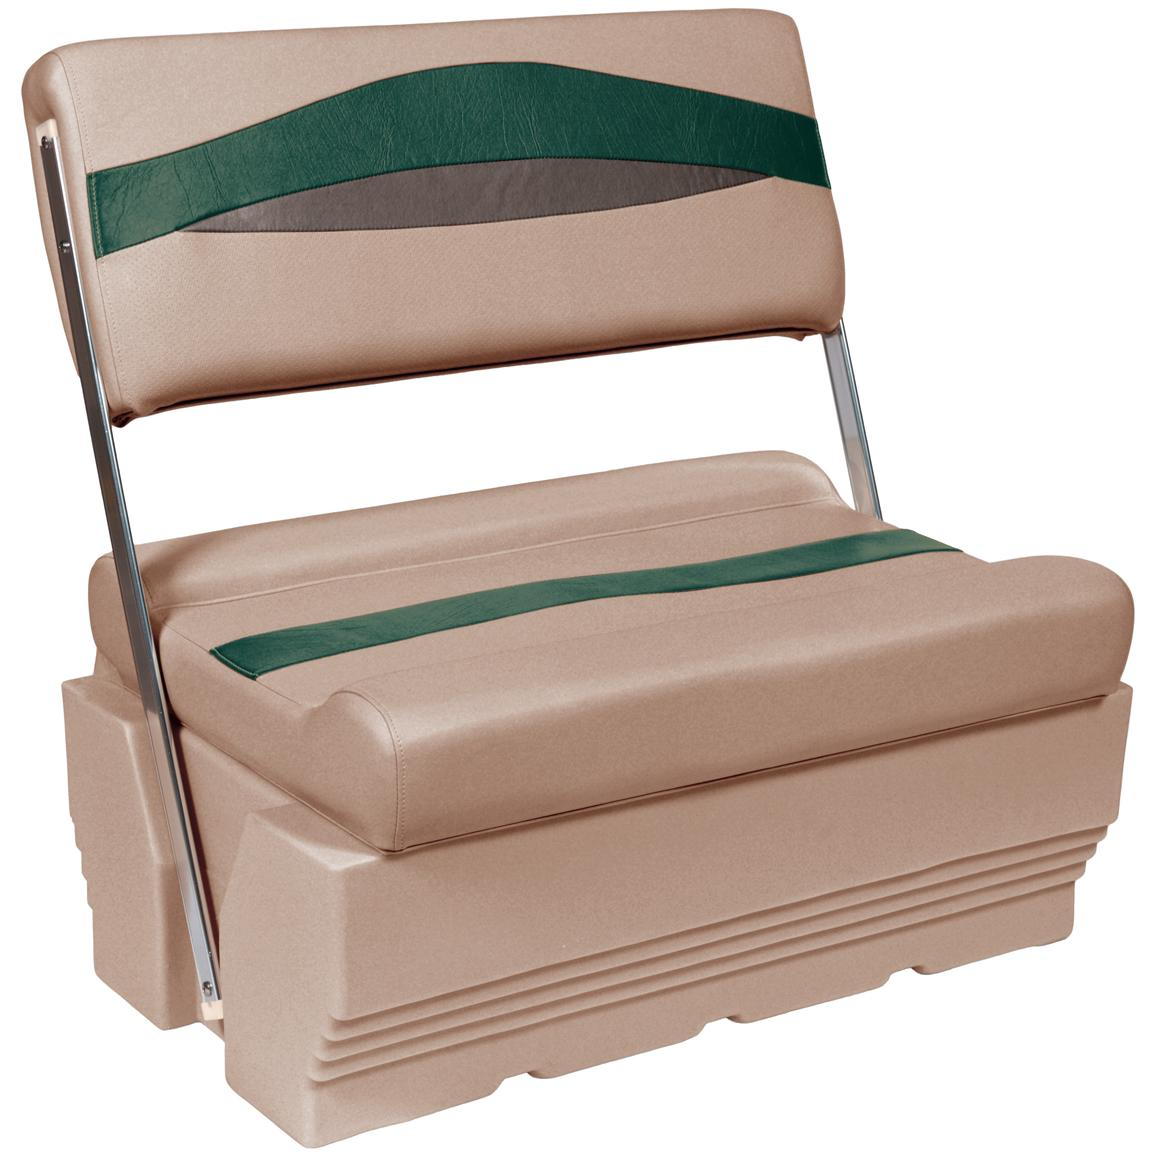 Wise® Premier 1100 Series Pontoon Flip-Flop Seat, Color F